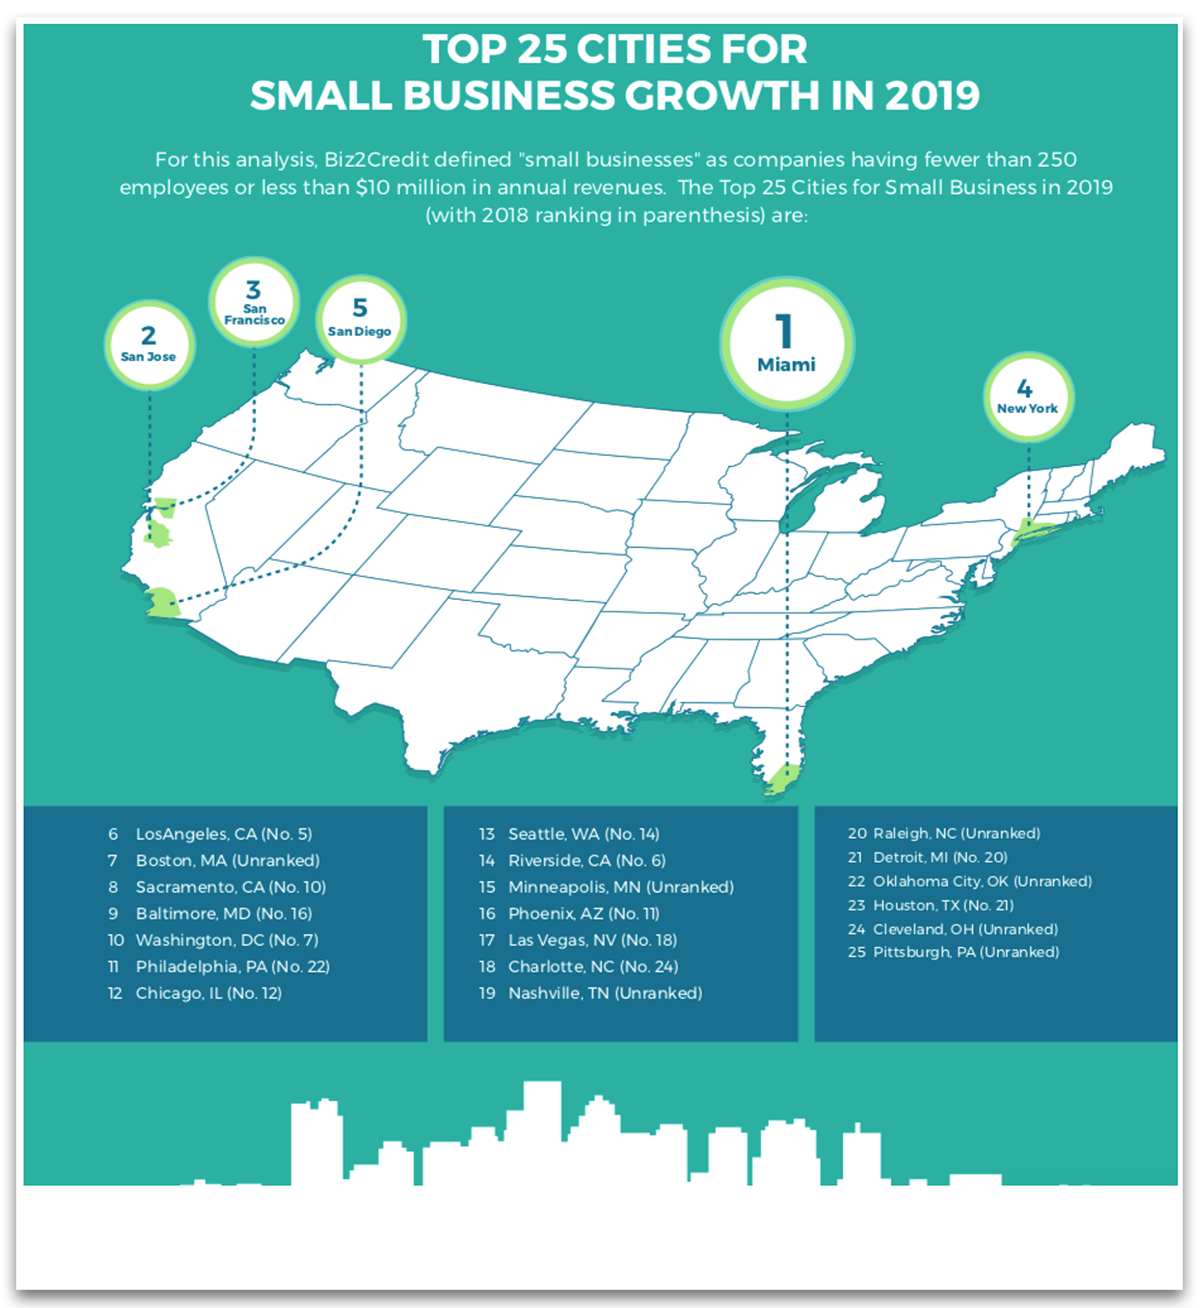 Map of Top 25 Cities for Small Business Growth in 2019